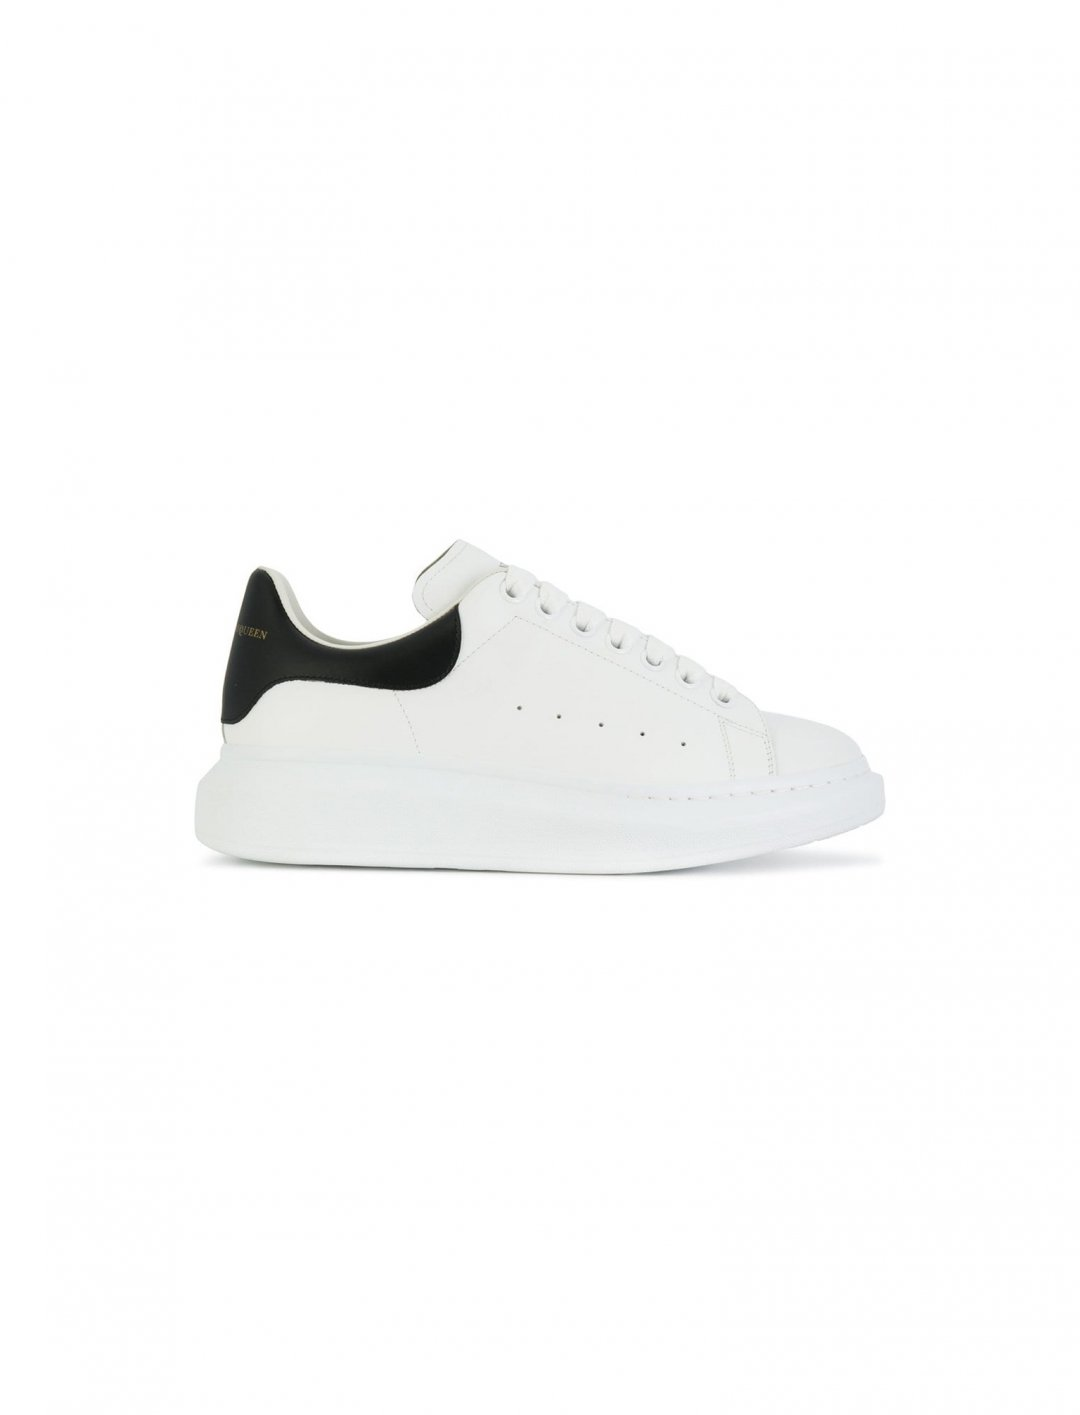 "Lotto Boyzz' Oversized Sneakers {""id"":12,""product_section_id"":1,""name"":""Shoes"",""order"":12} Alexander McQueen"